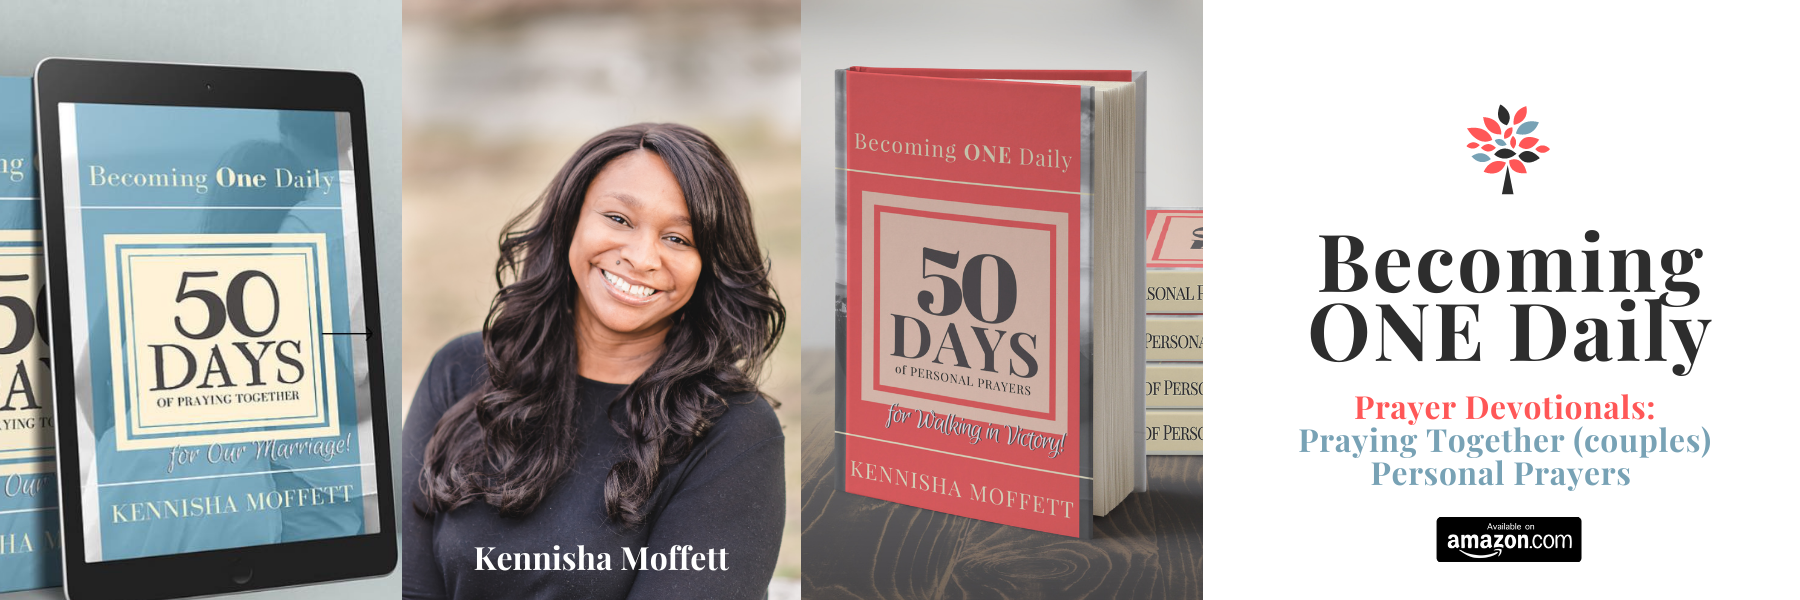 Becoming ONE Daily Prayer Devotionals